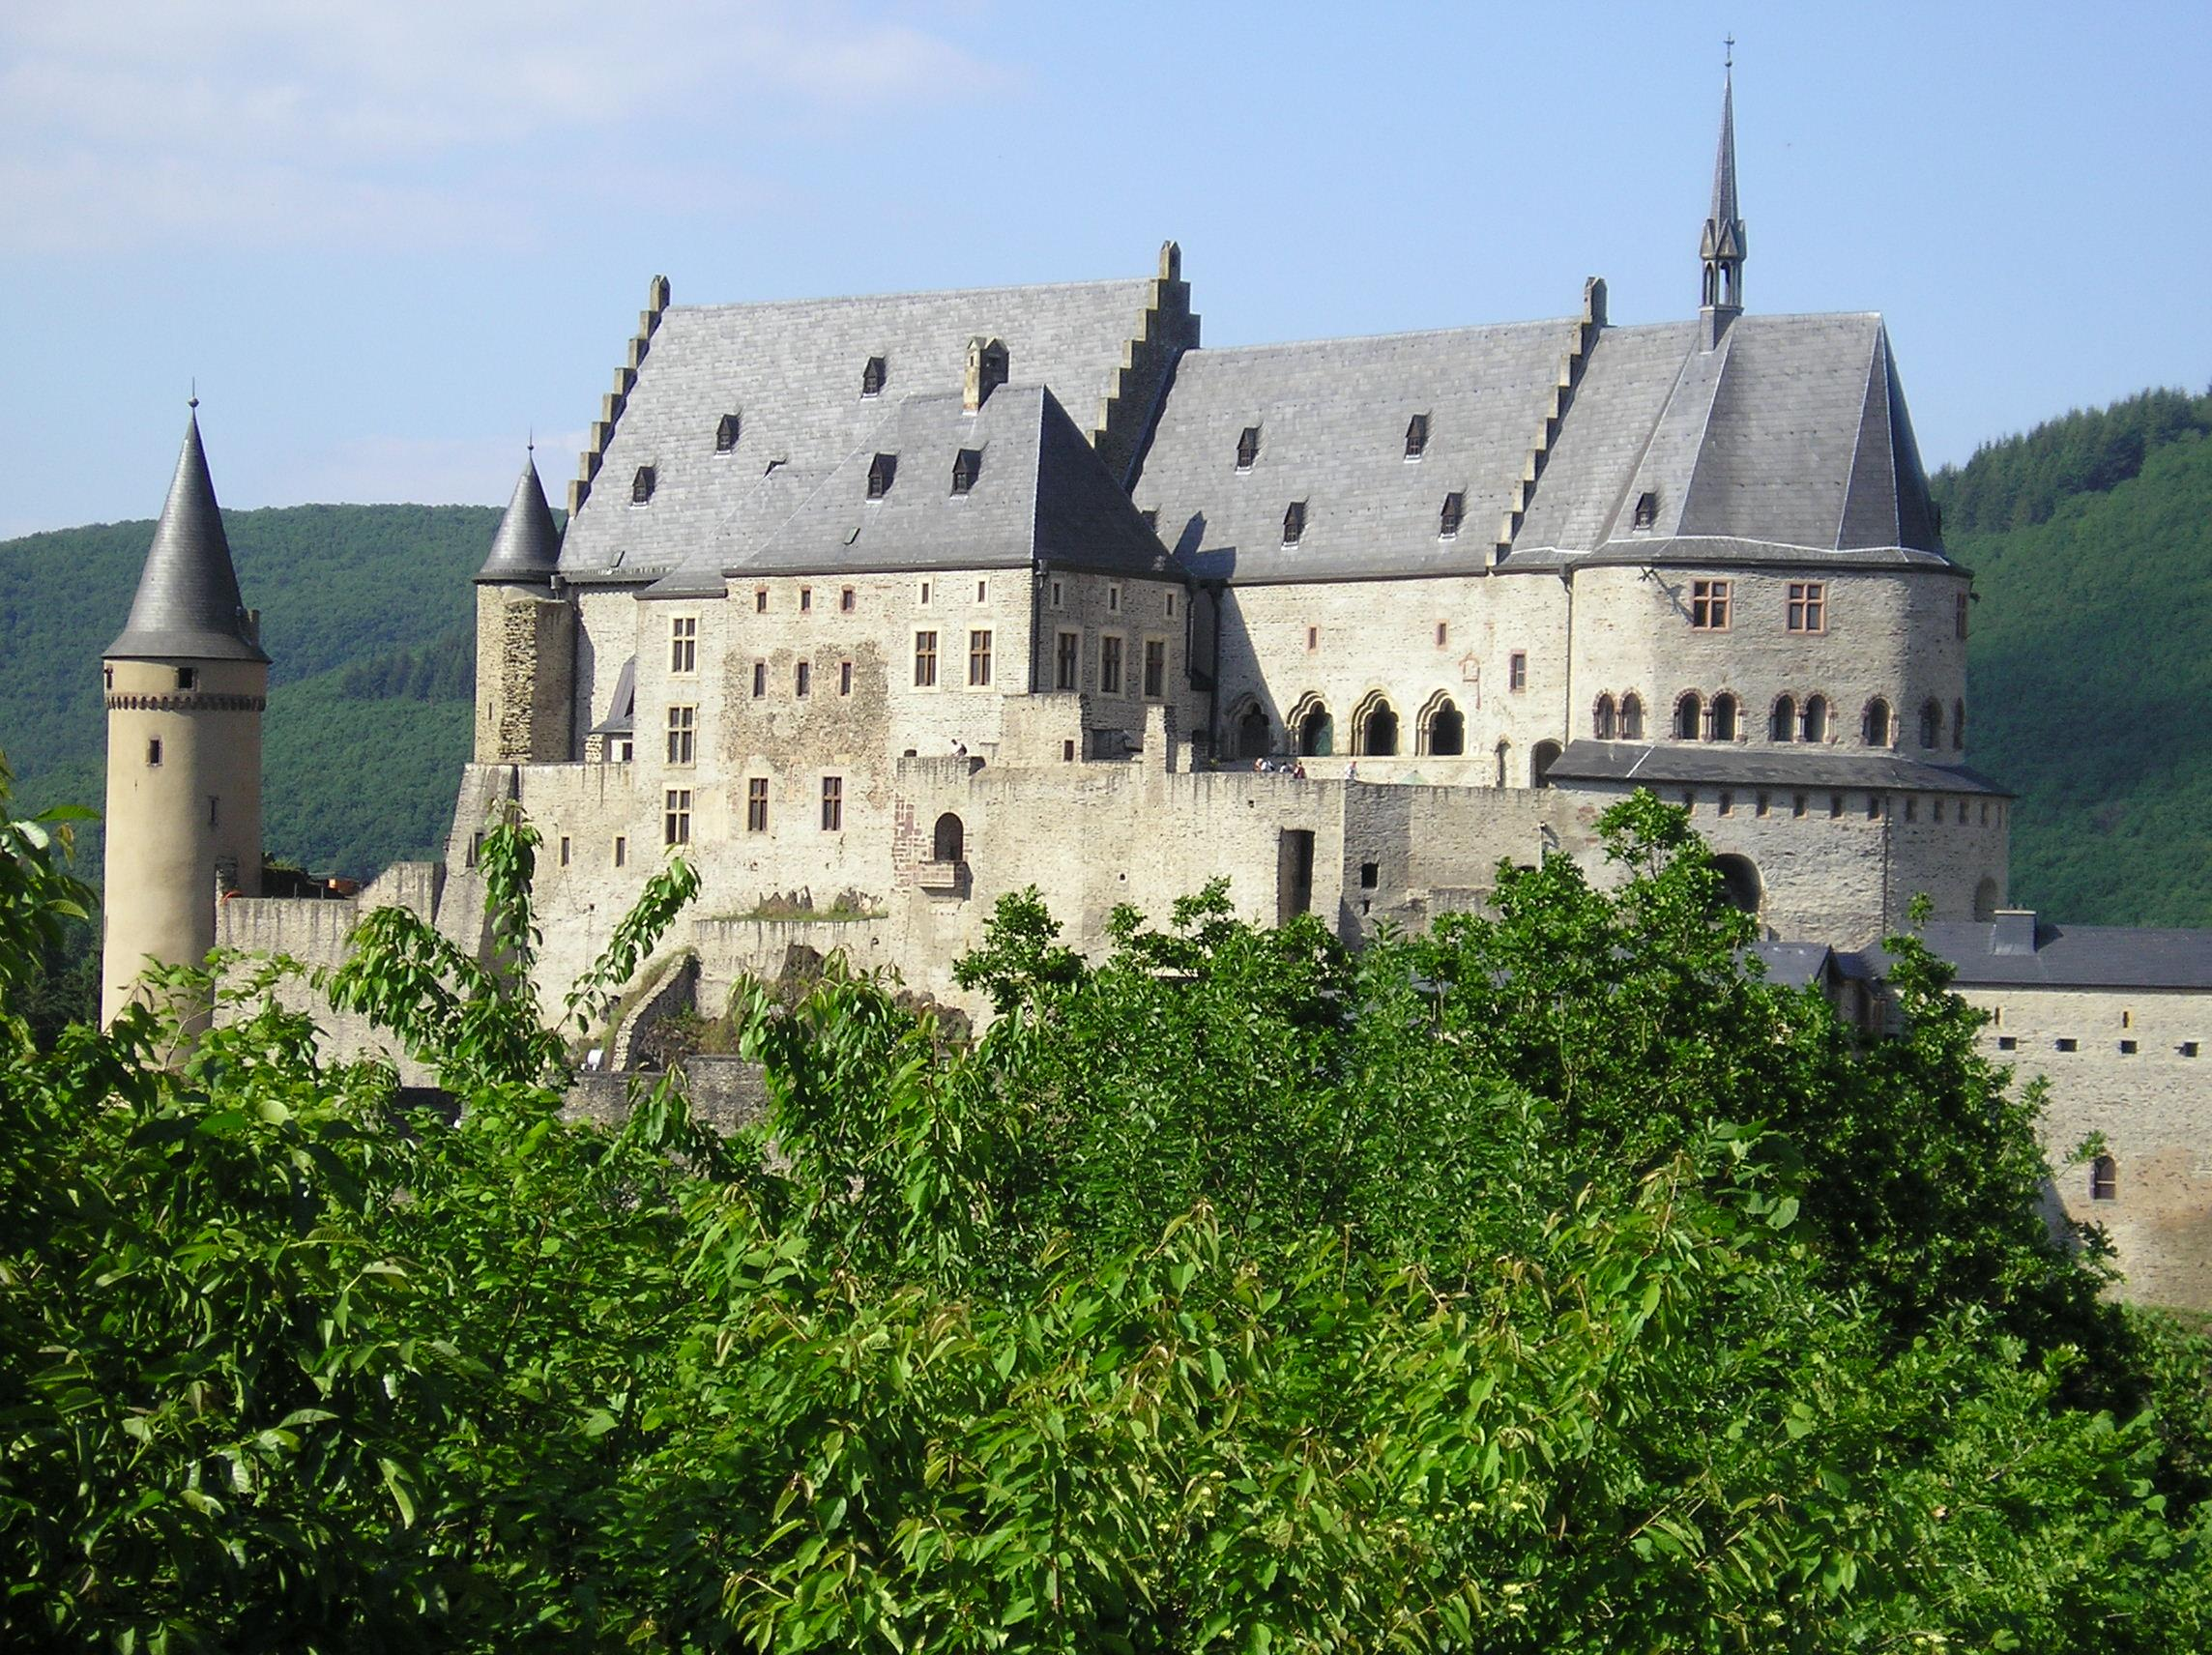 The Vianden Castle